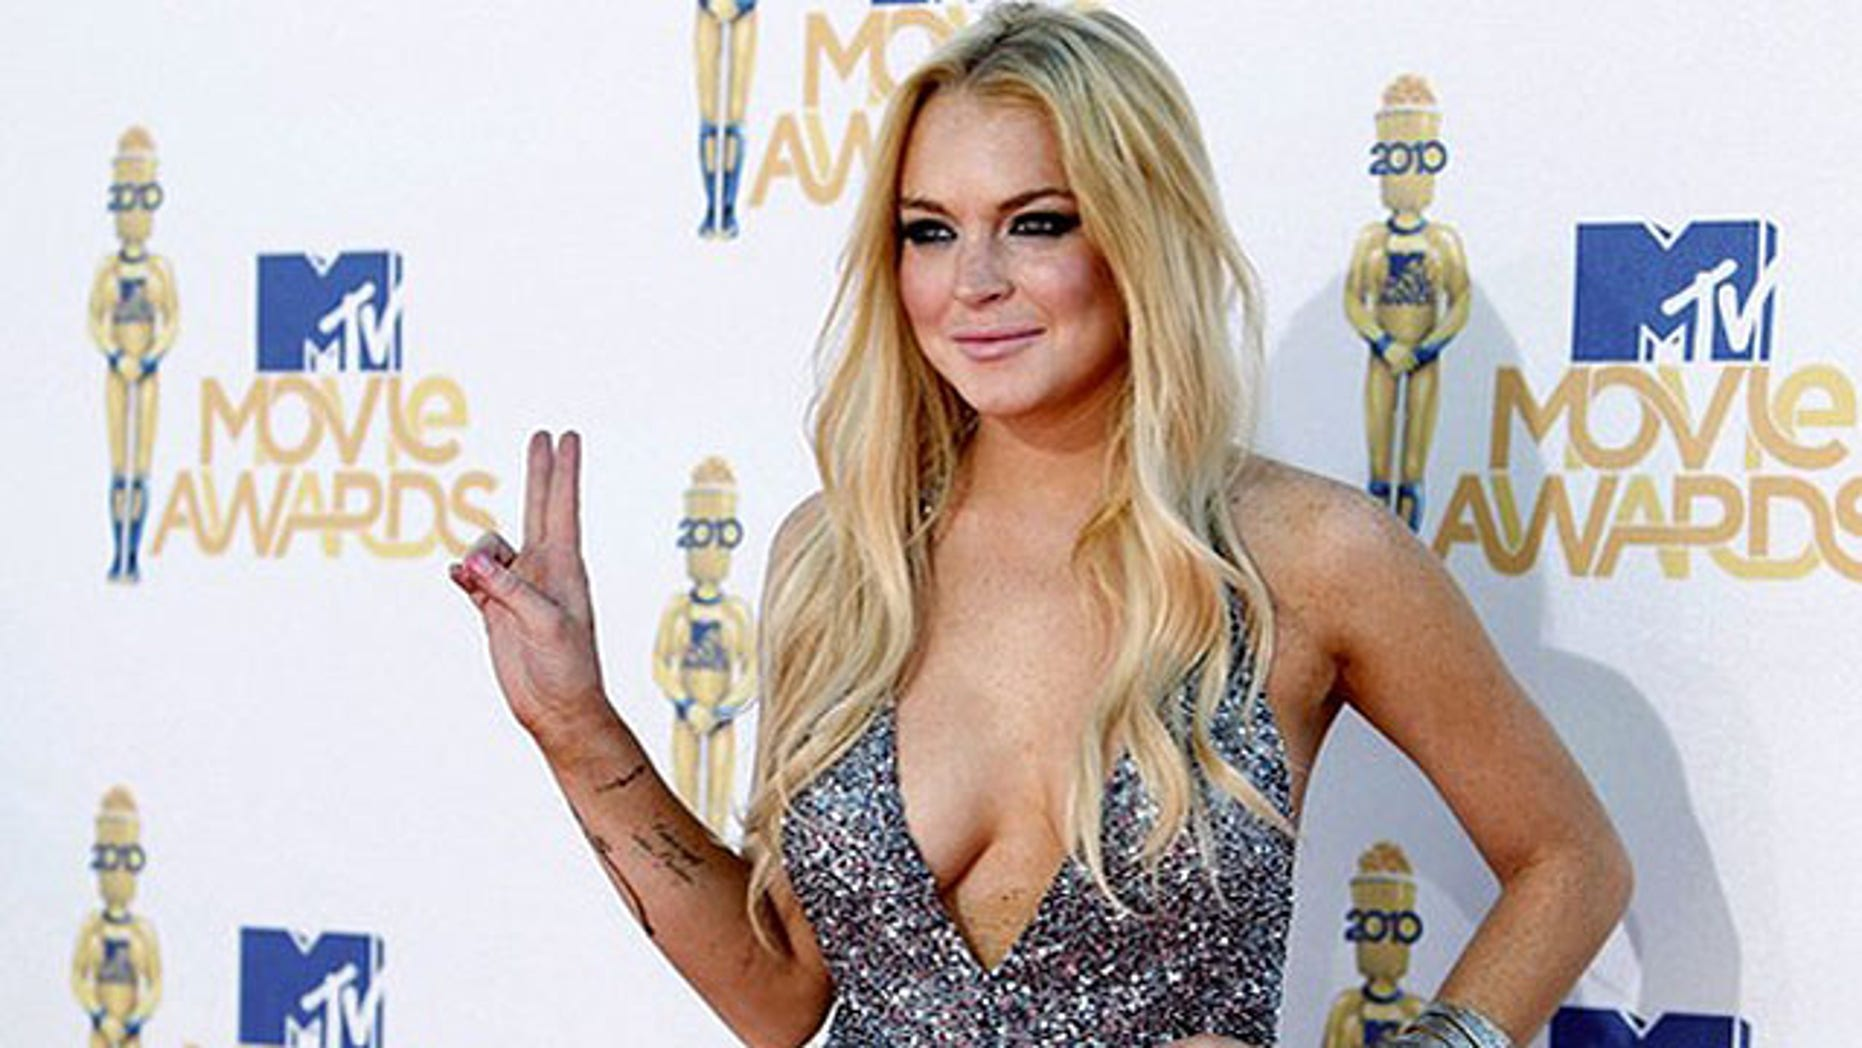 June 6: Lindsay Lohan arrives at the 2010 MTV Movie Awards.